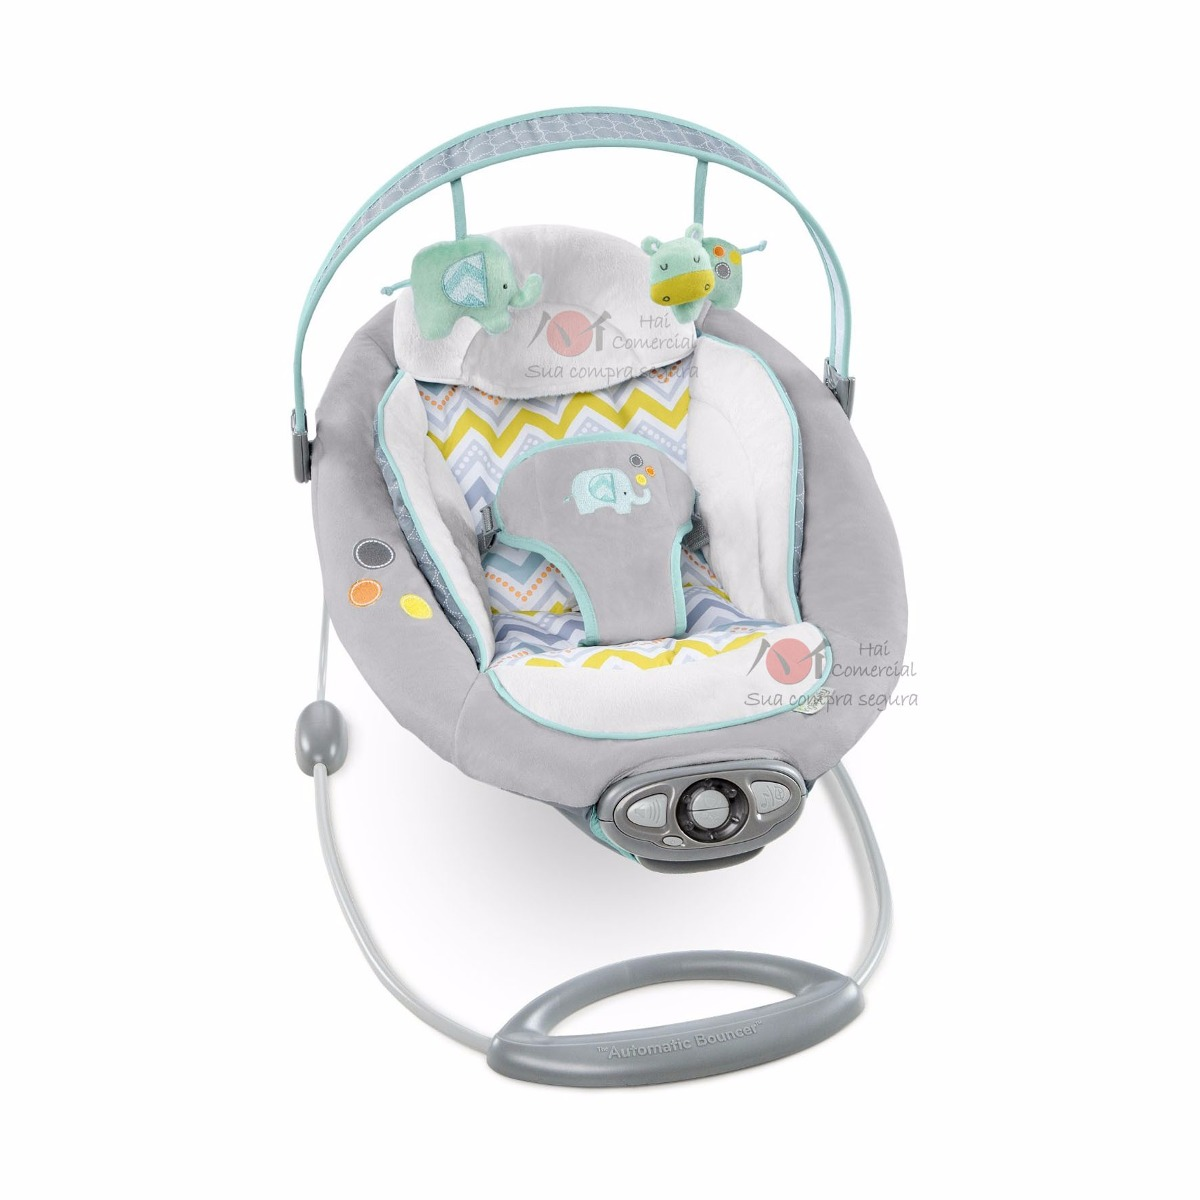 bright starts automatic bouncer instruction manual